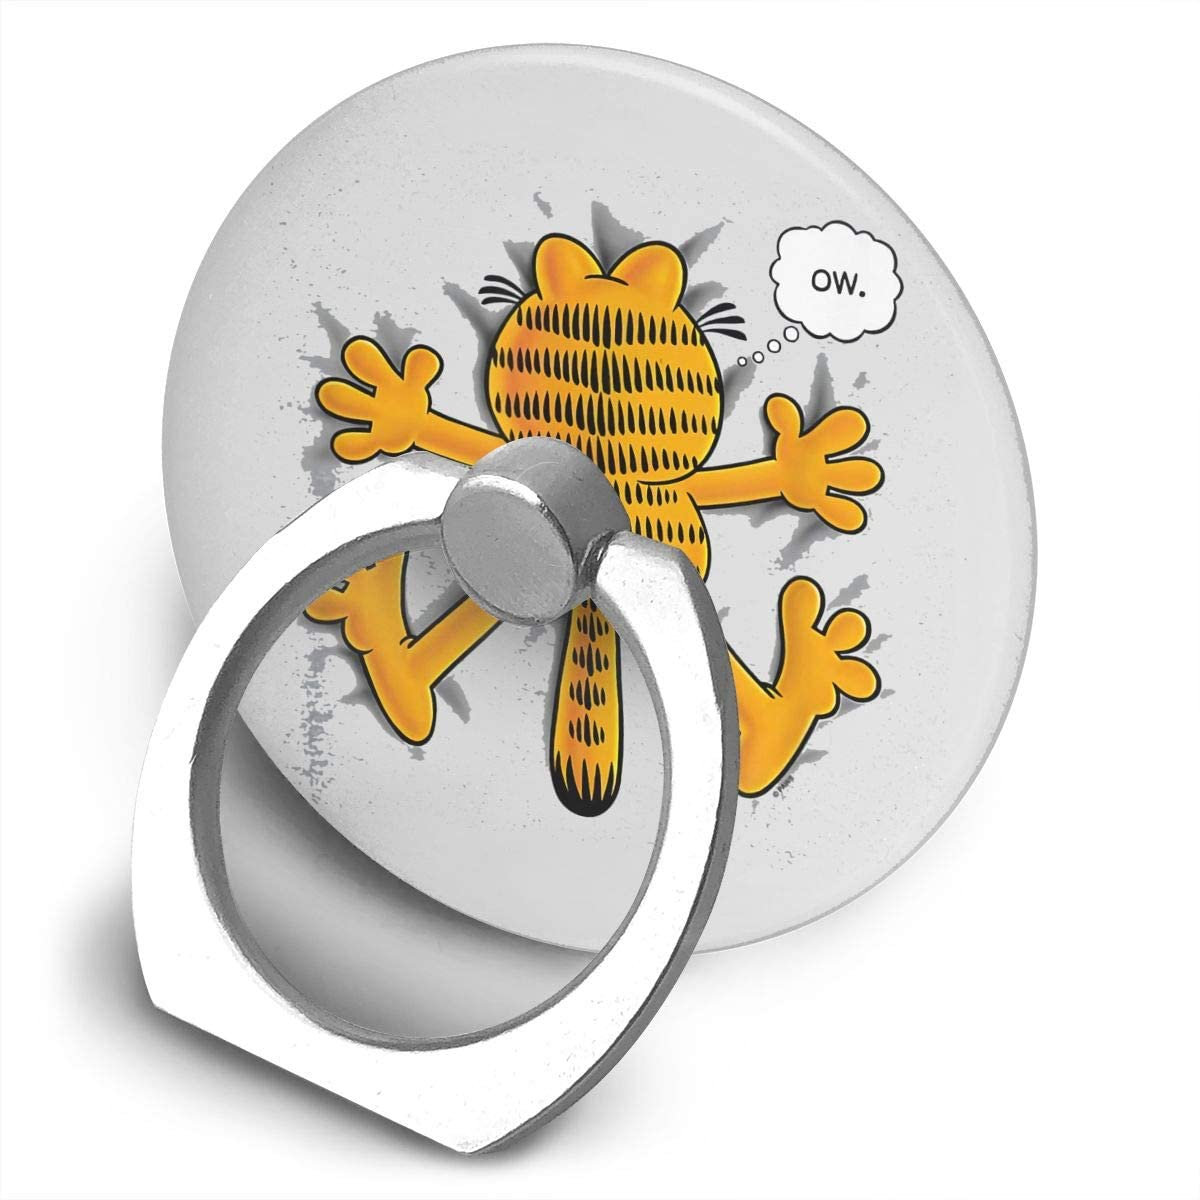 Nmfdz Garfield Ow Alloy Mobile Phone Ring Bracket,360 Degree Rotating Ring Stand Grip Mounts